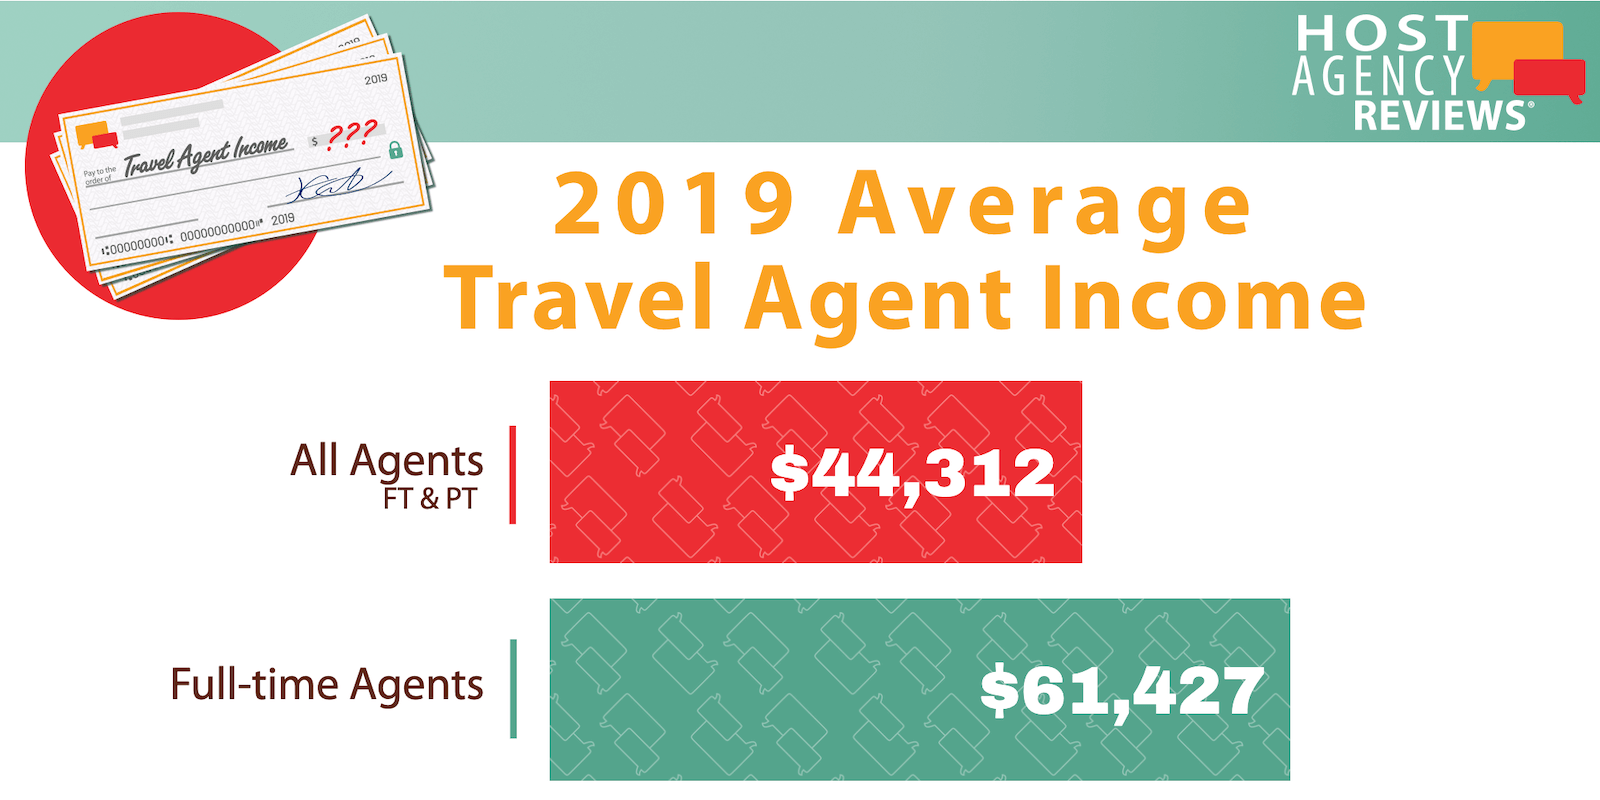 Average Travel Agent Income 2019